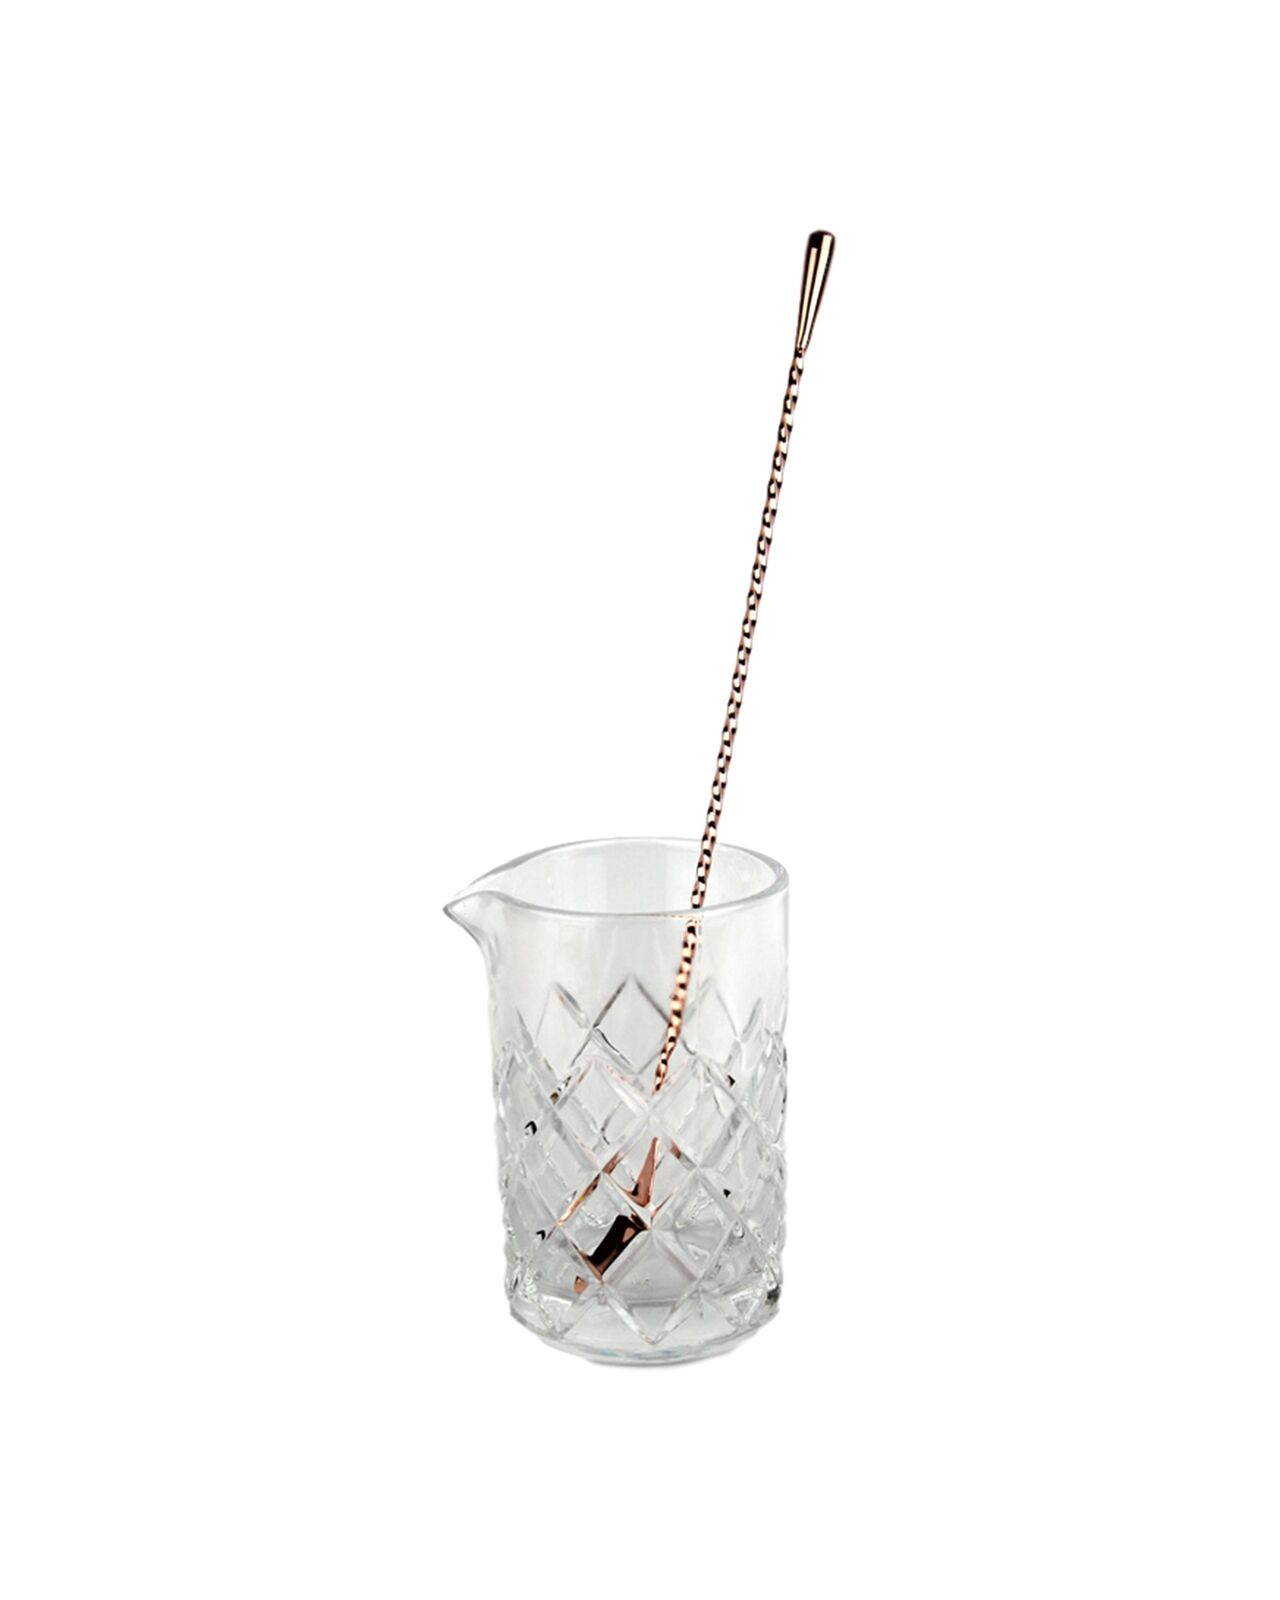 Cocktail Kit Yarai Mixing Glass Set - Copper Bar Accessories